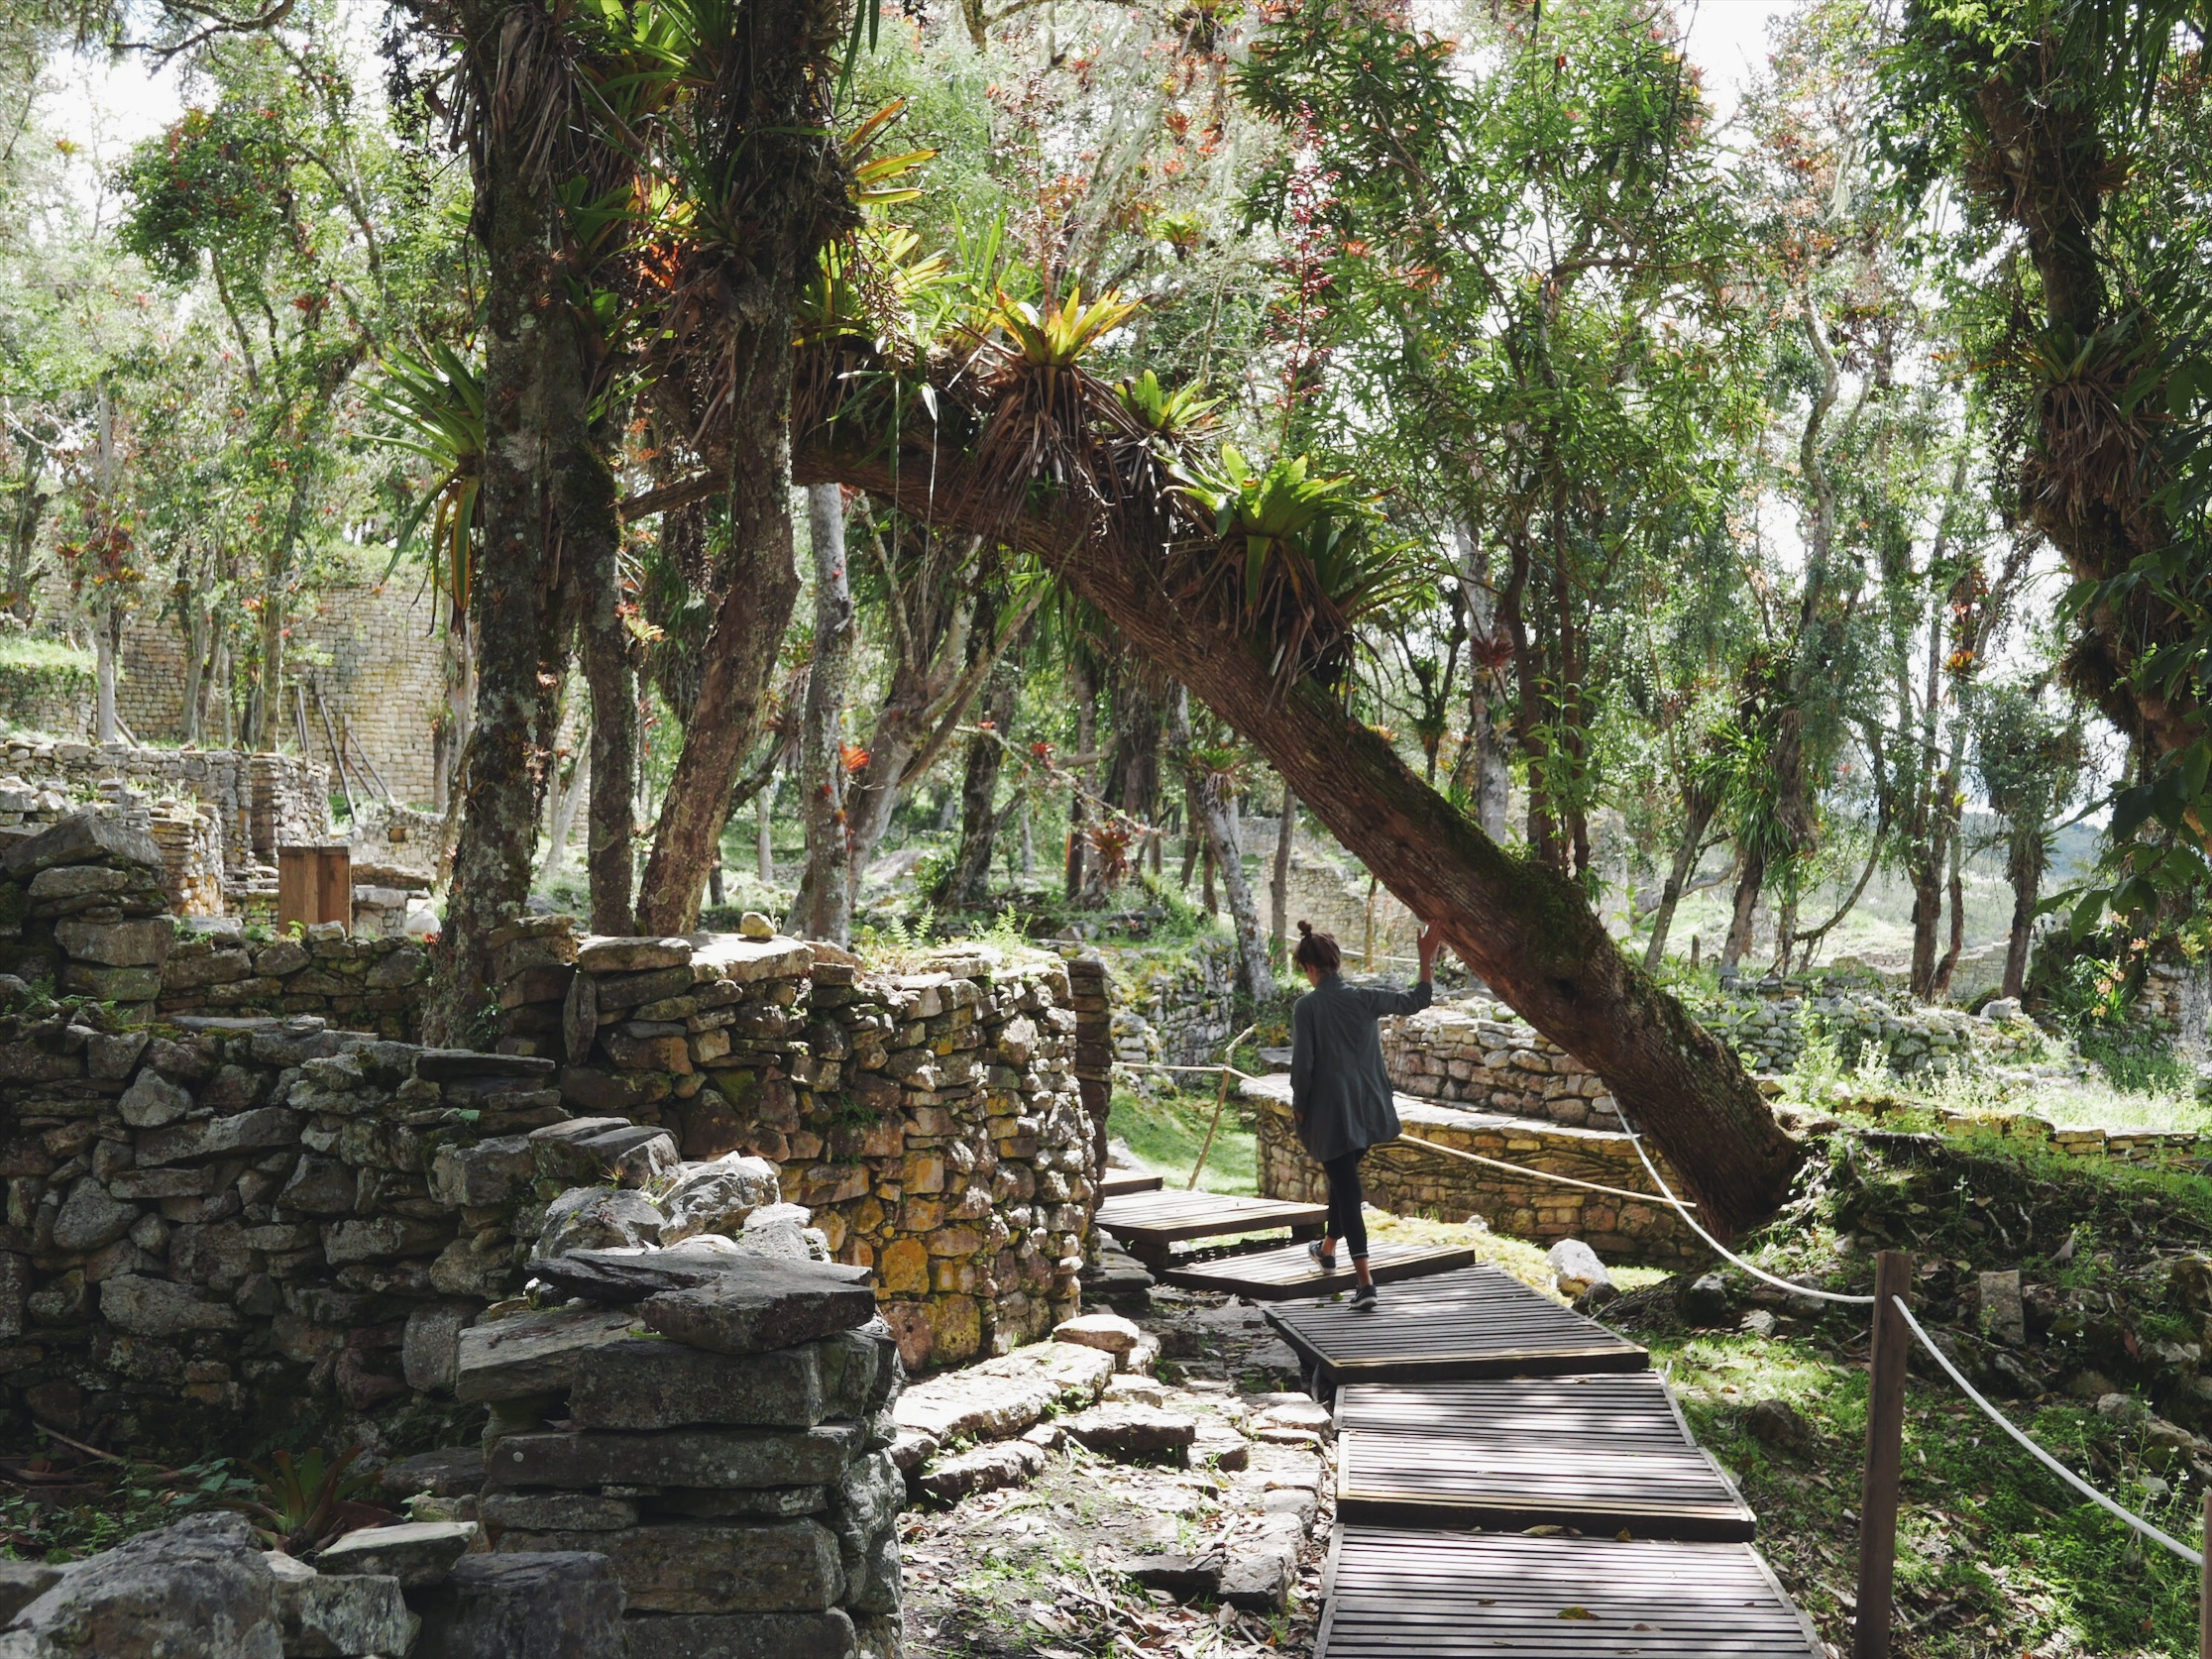 Very different from the highly-manicured Machu Picchu, this place has been overgrown with tree roots and foliage.